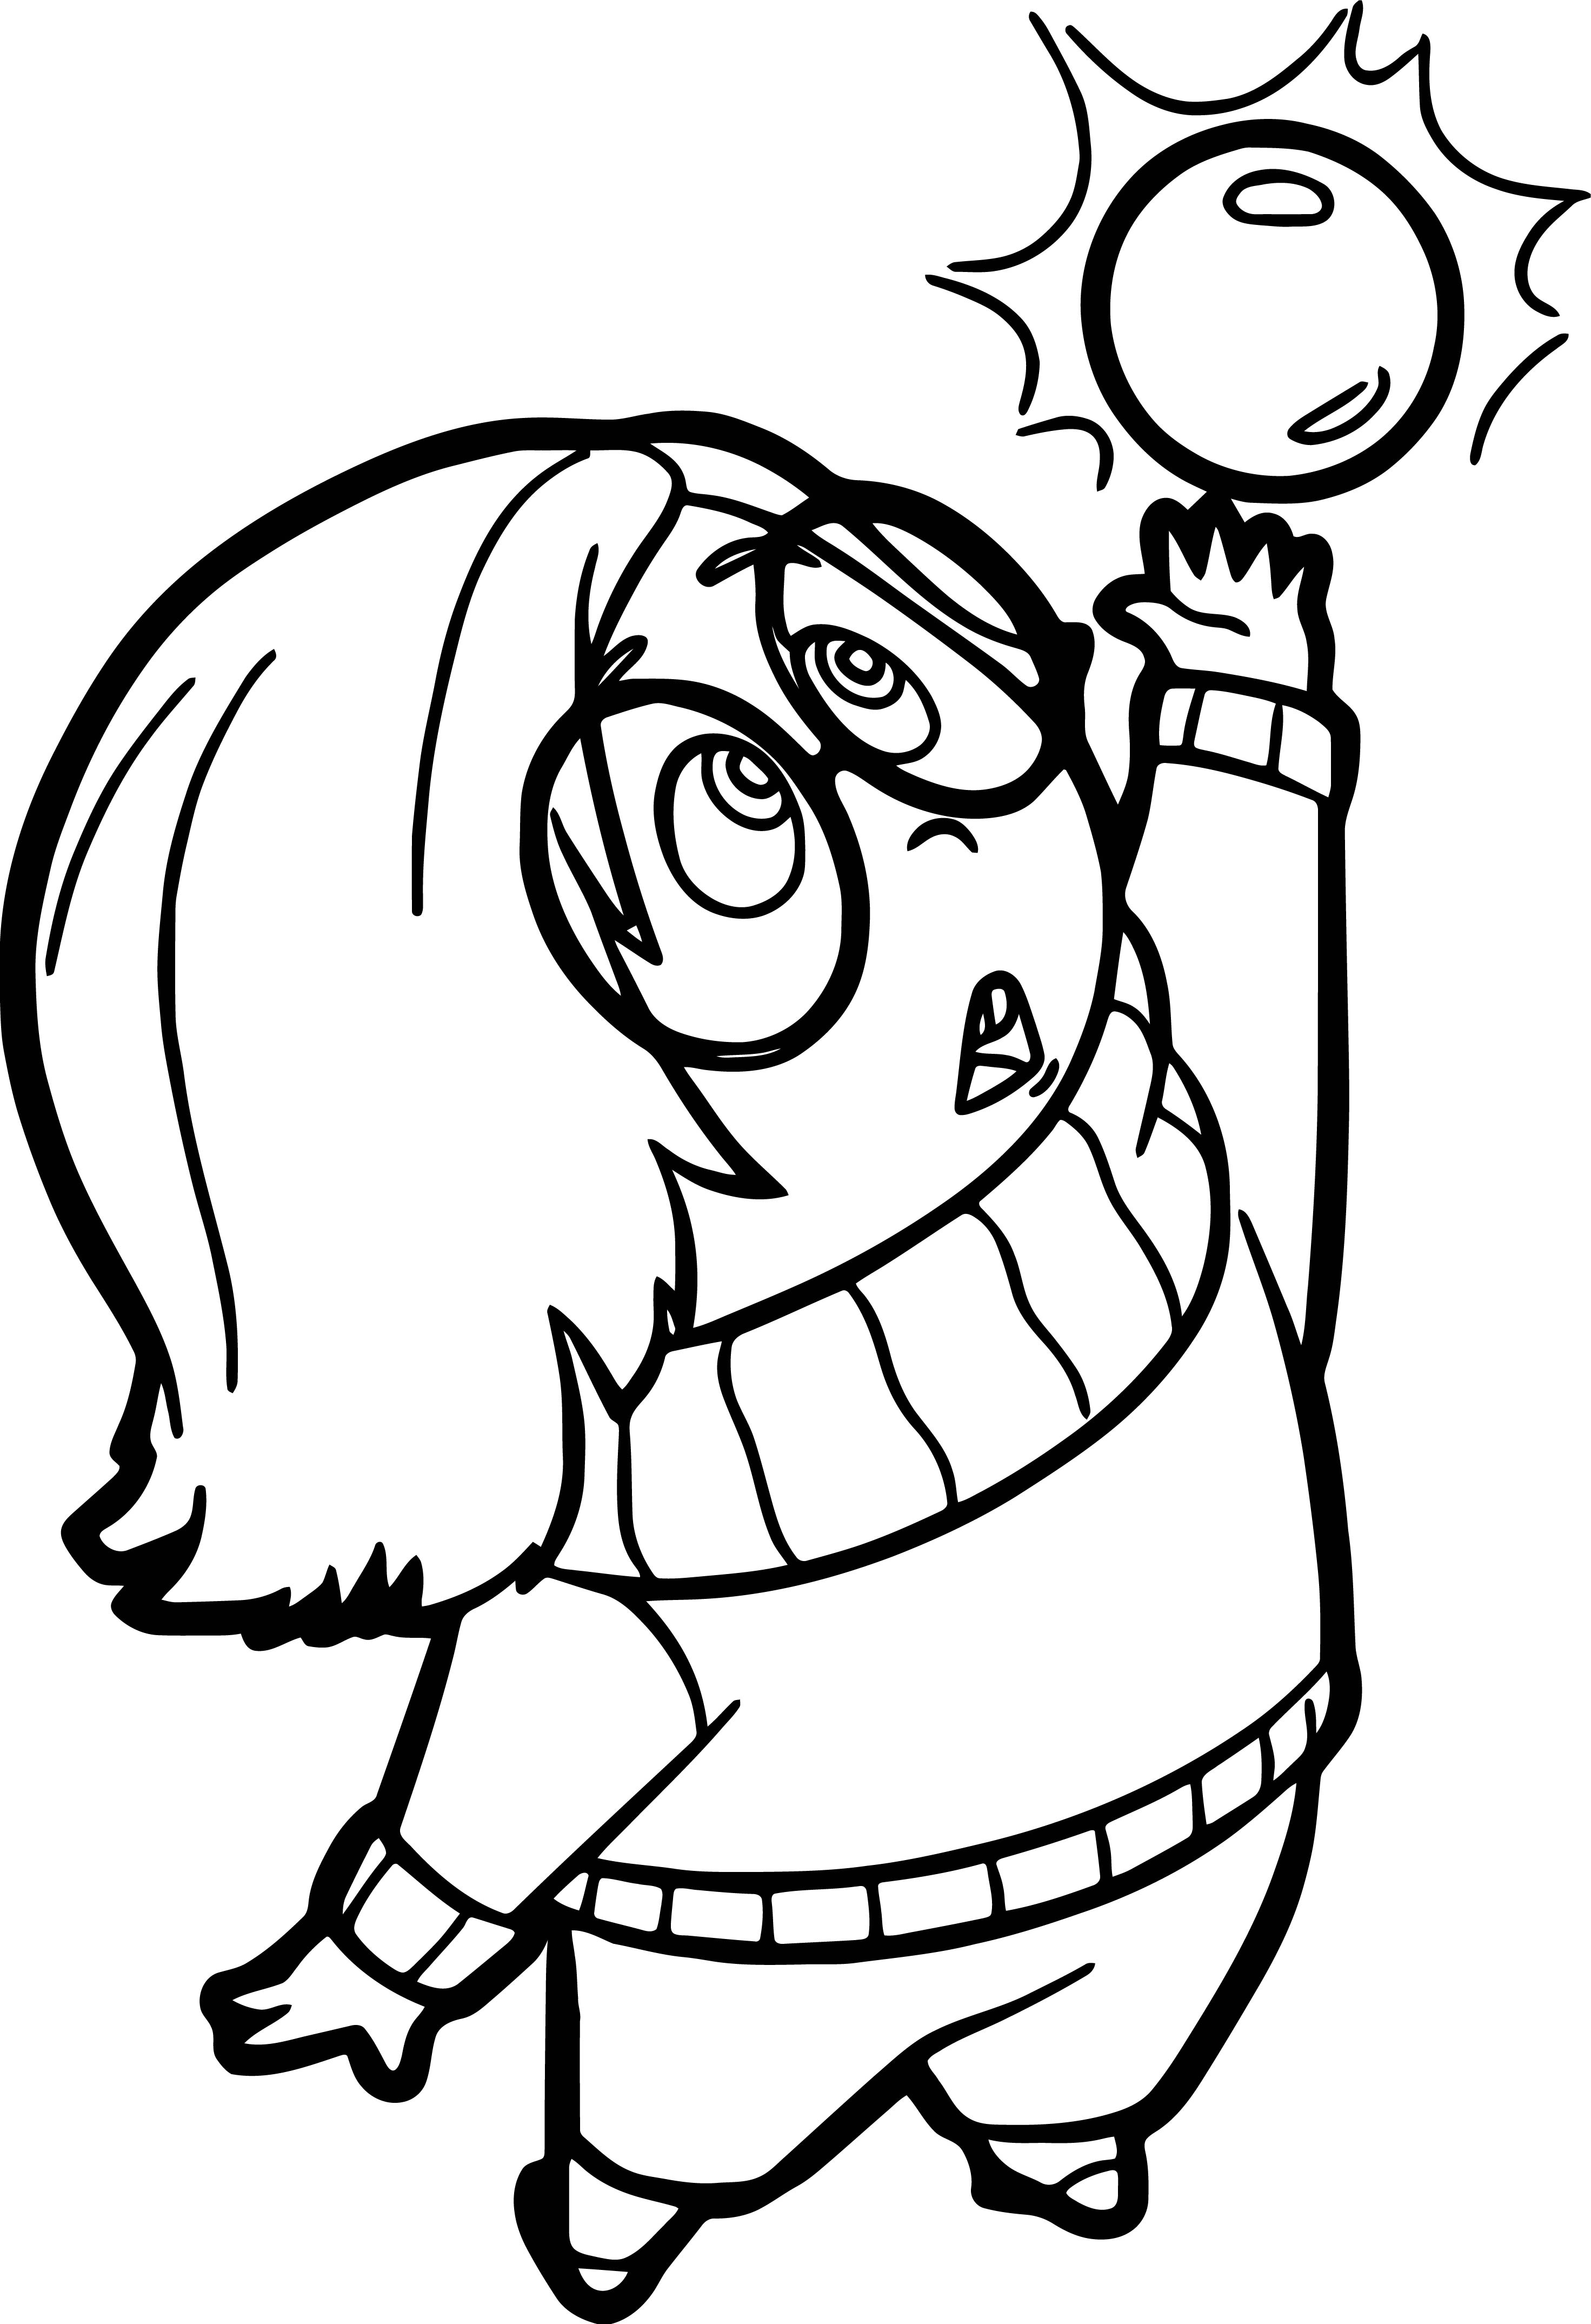 Sadness Sphere Coloring Pages